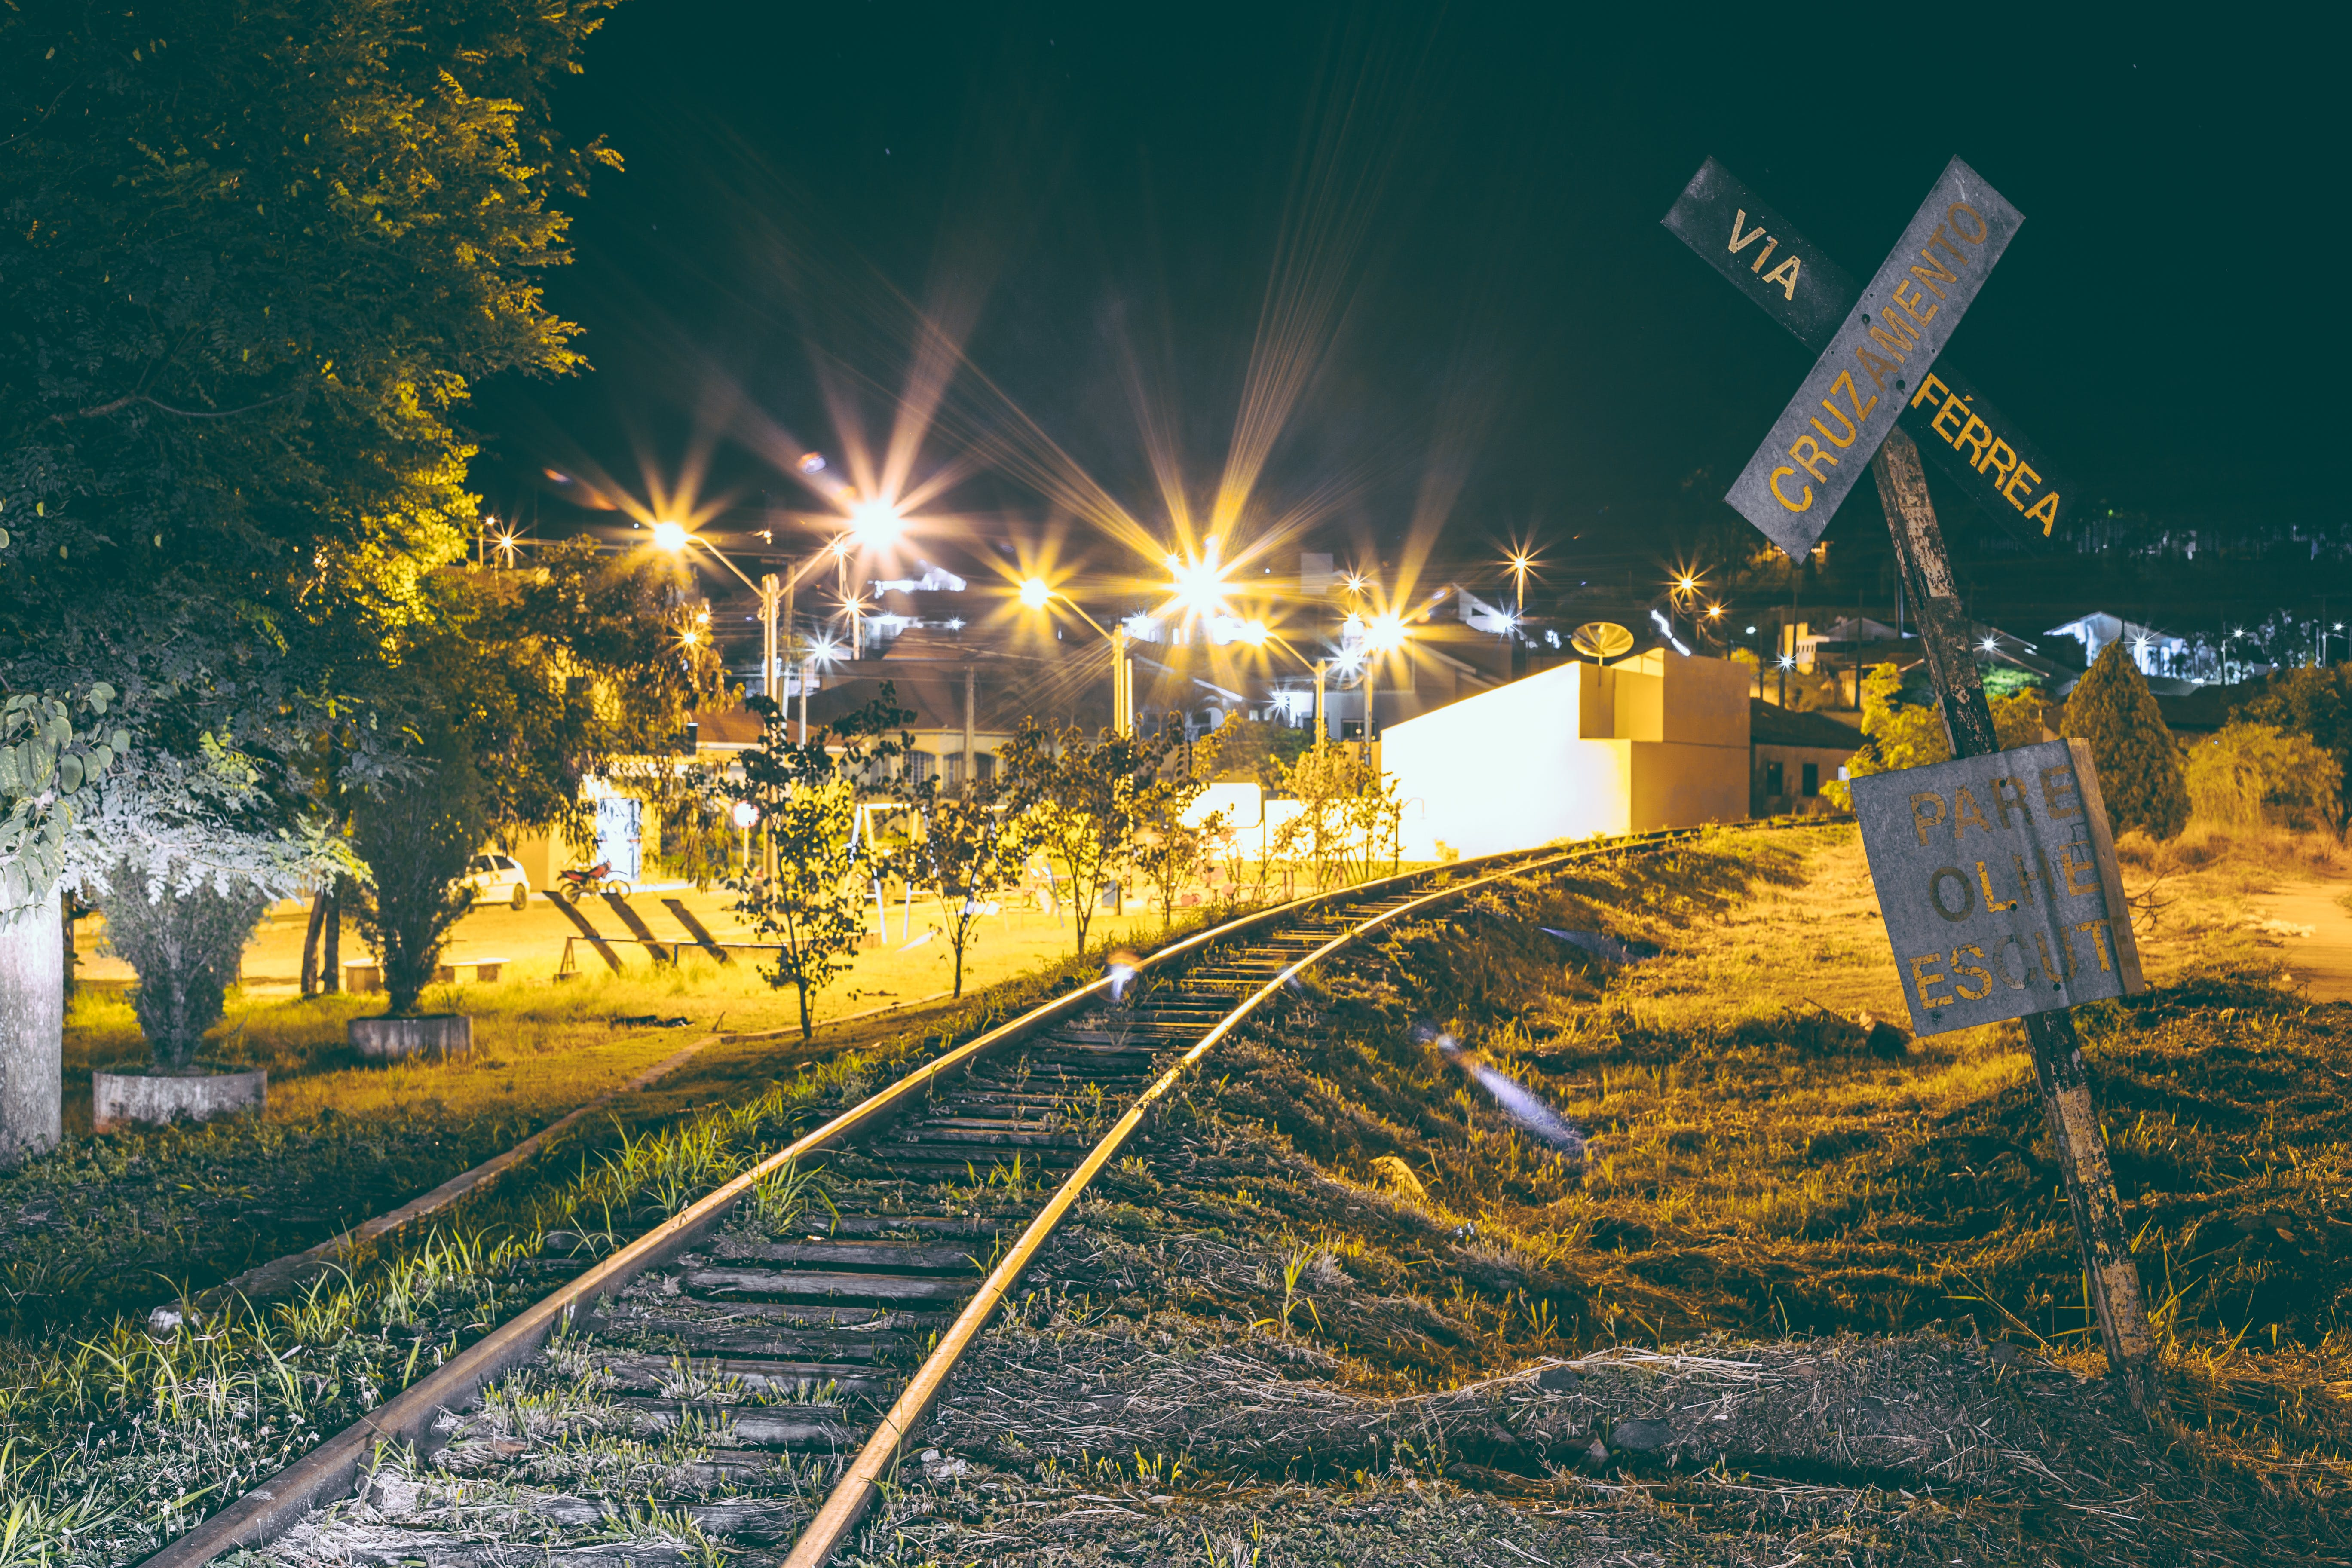 Rail Road With Lights